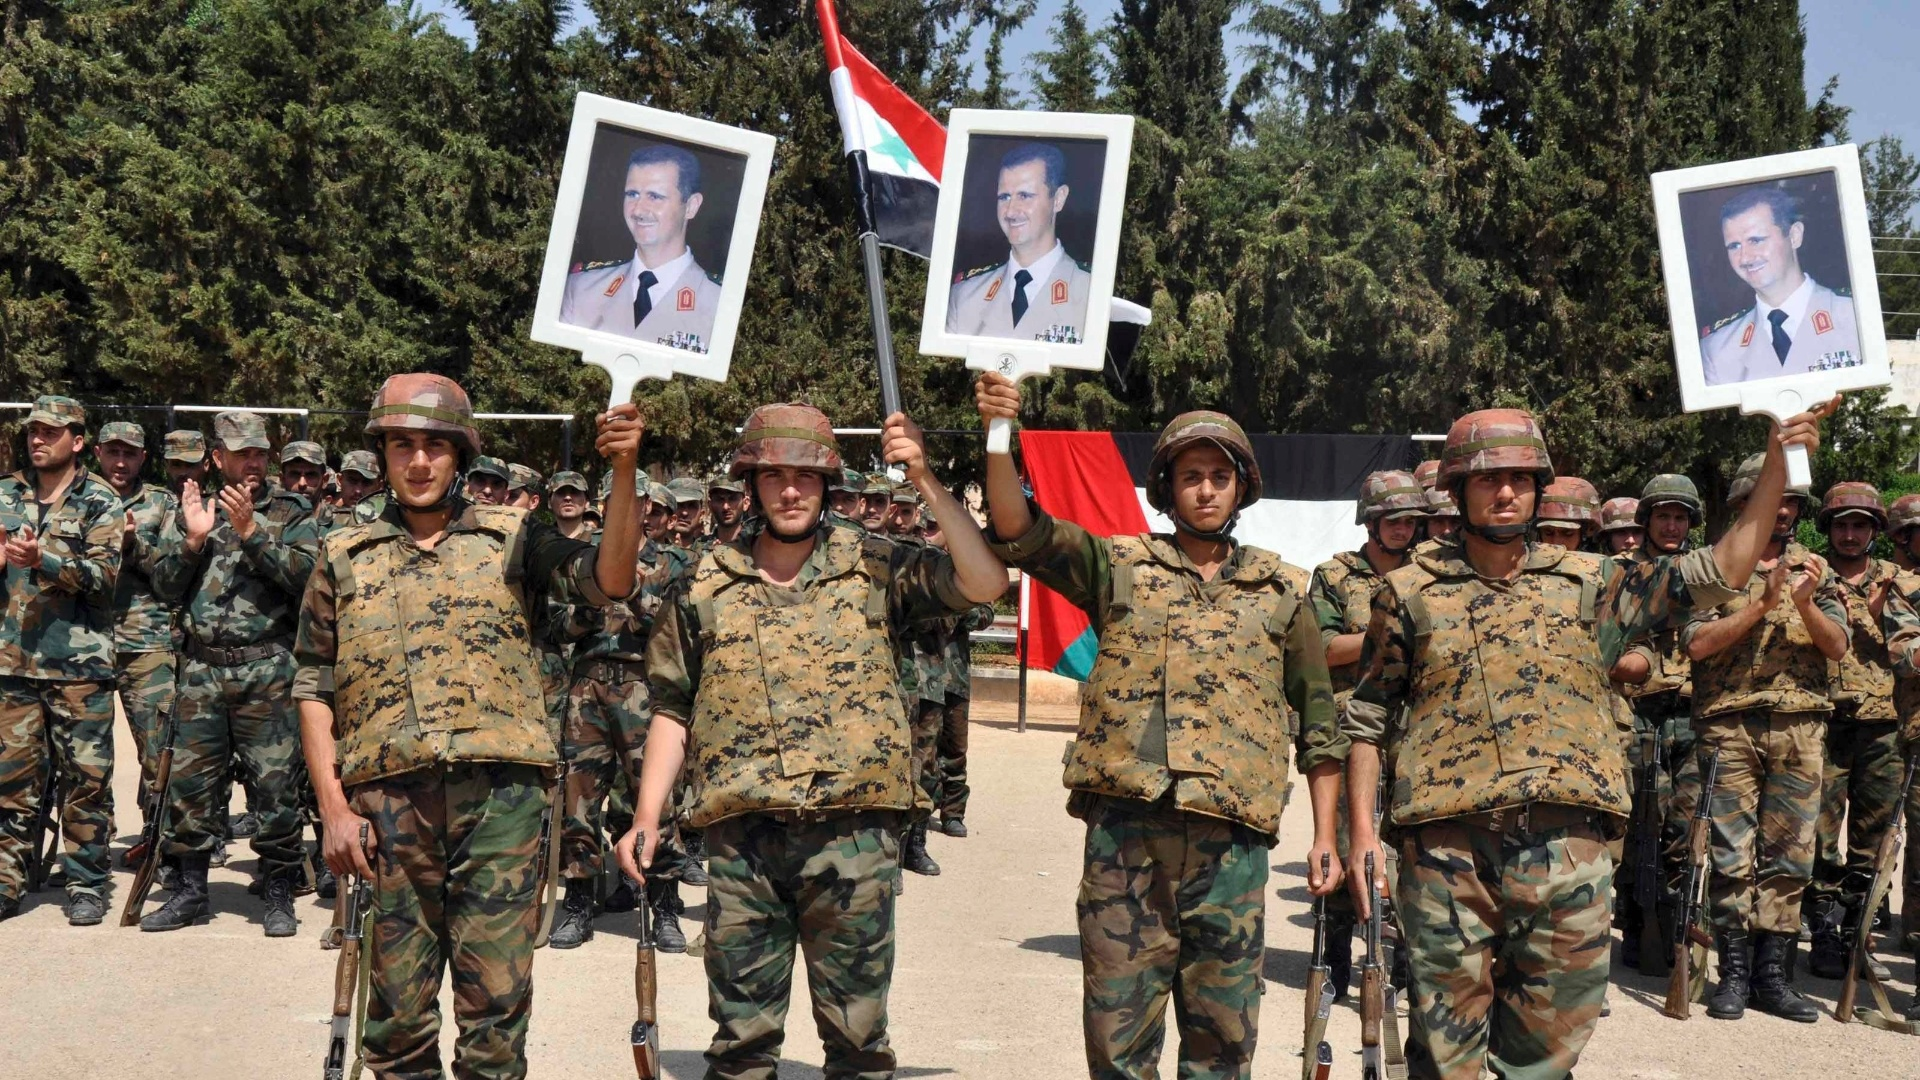 6.mai.2013 - Foras leais ao presidente da Sria, Bashar Assad, exibem foto do ditador  durante a comemorao do Dia dos Mrtires, em um local no revelado